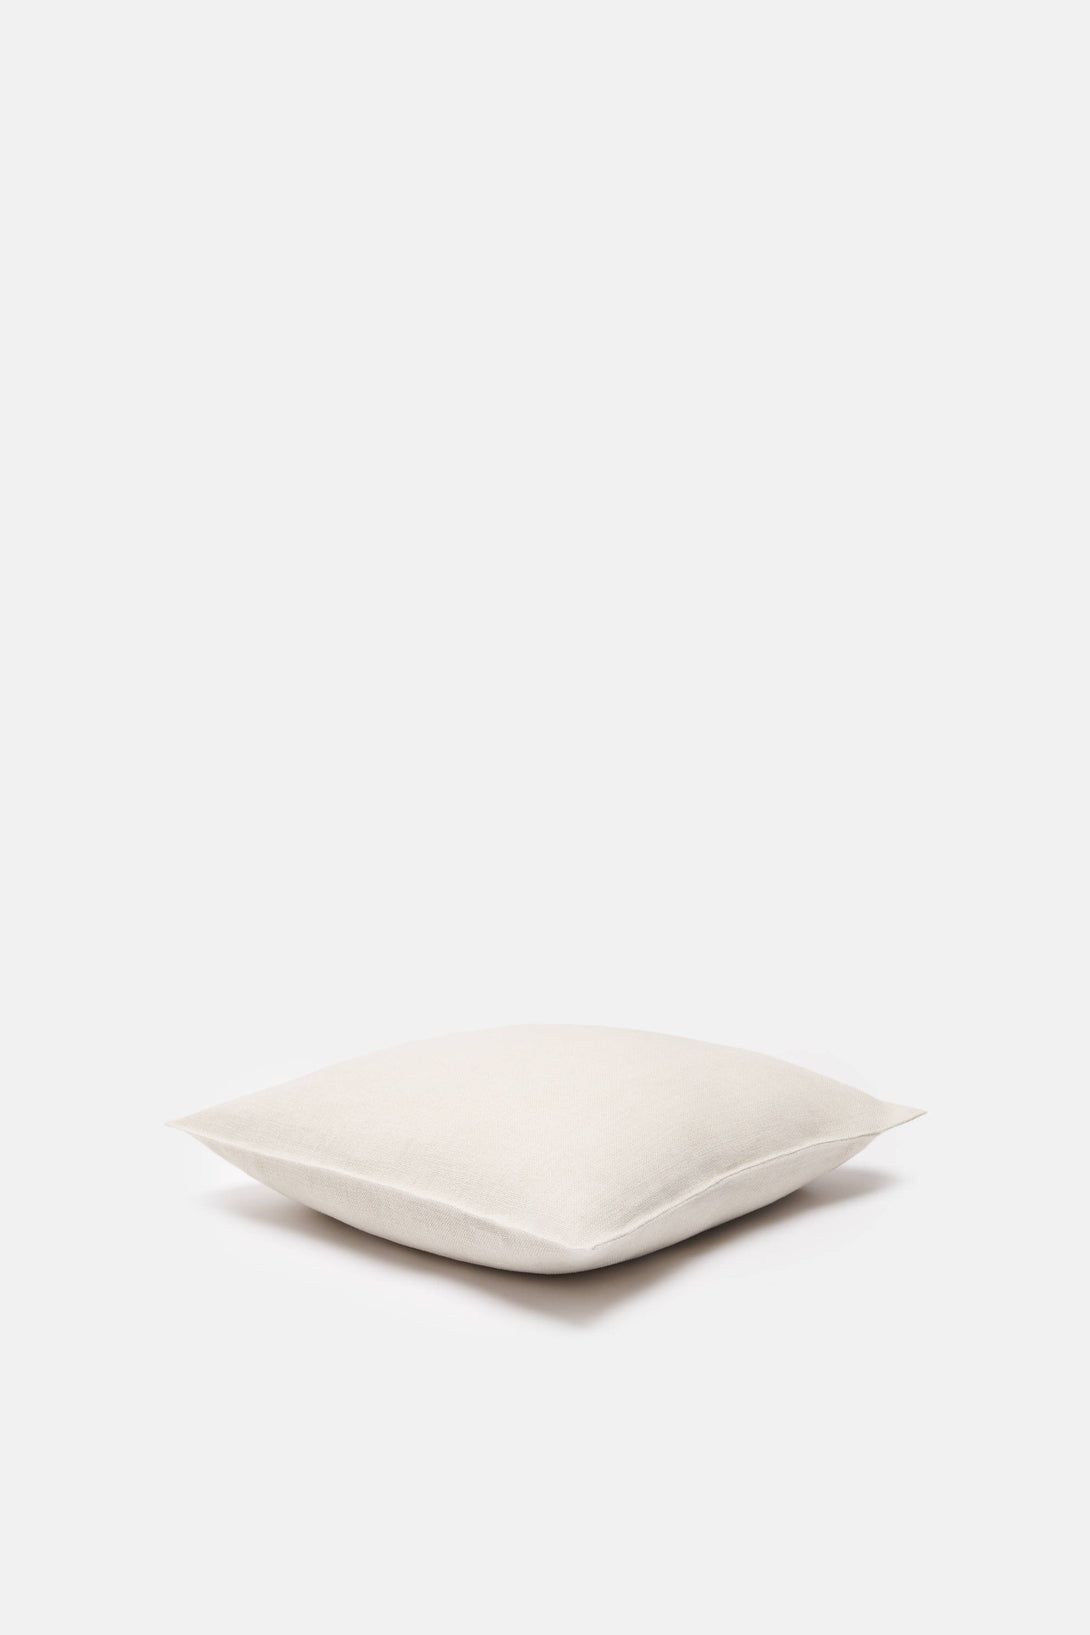 Napoli Vintage Pillow 15.5 cover - Natural